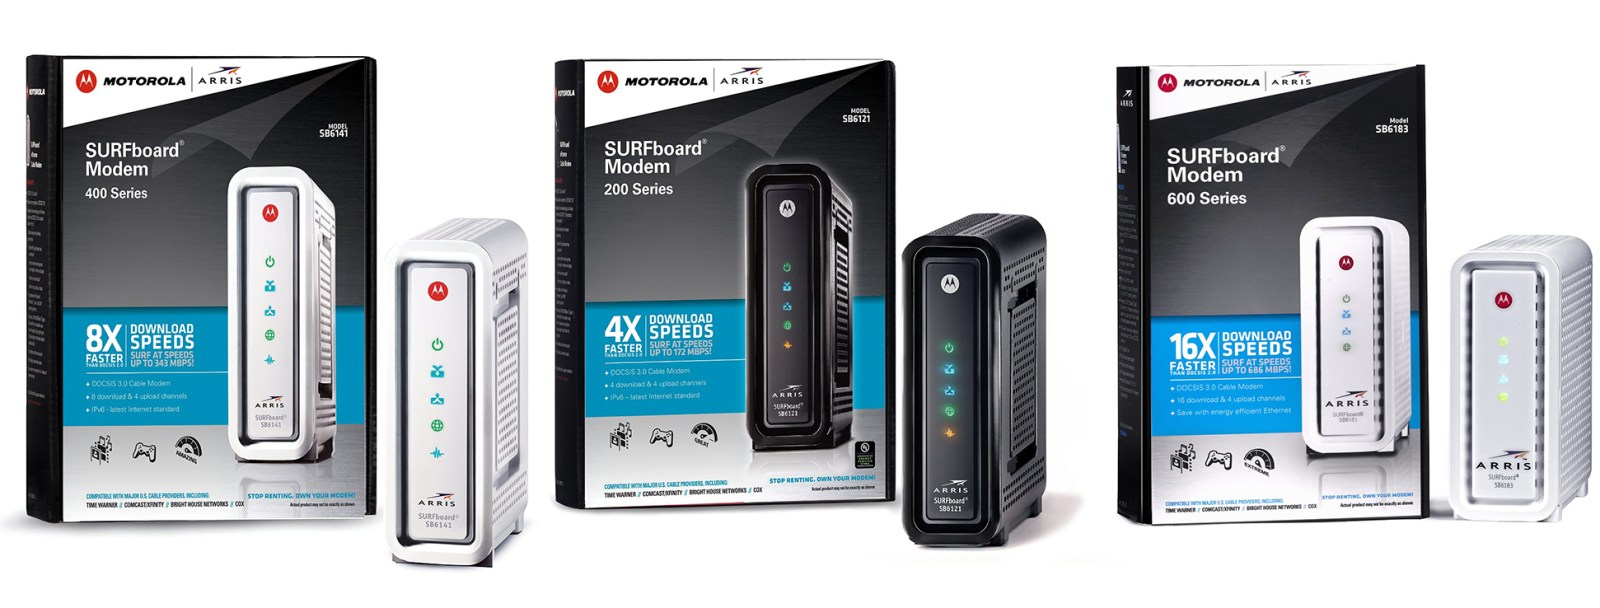 End the madness – stop renting your cable modem with these refurb Motorola deals from $35 shipped (Orig. up to $130)